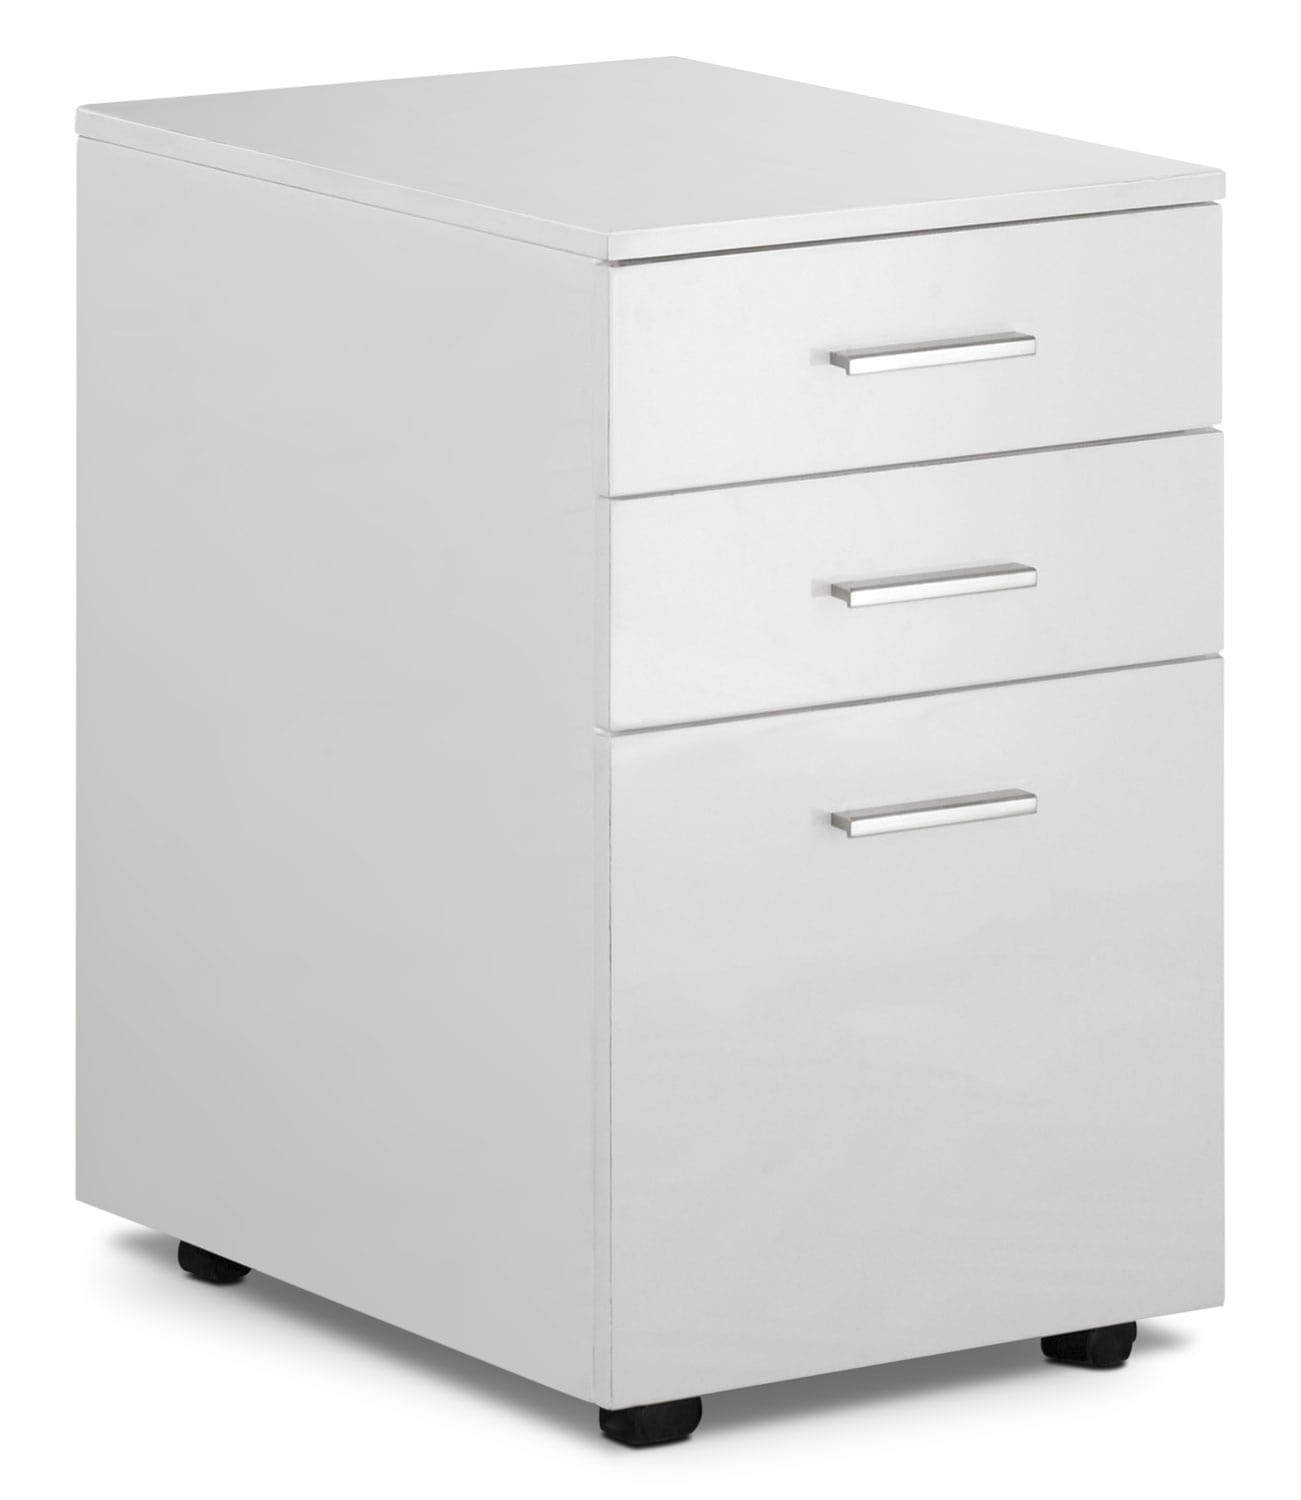 Home Office Furniture - Bexley Filing Cabinet